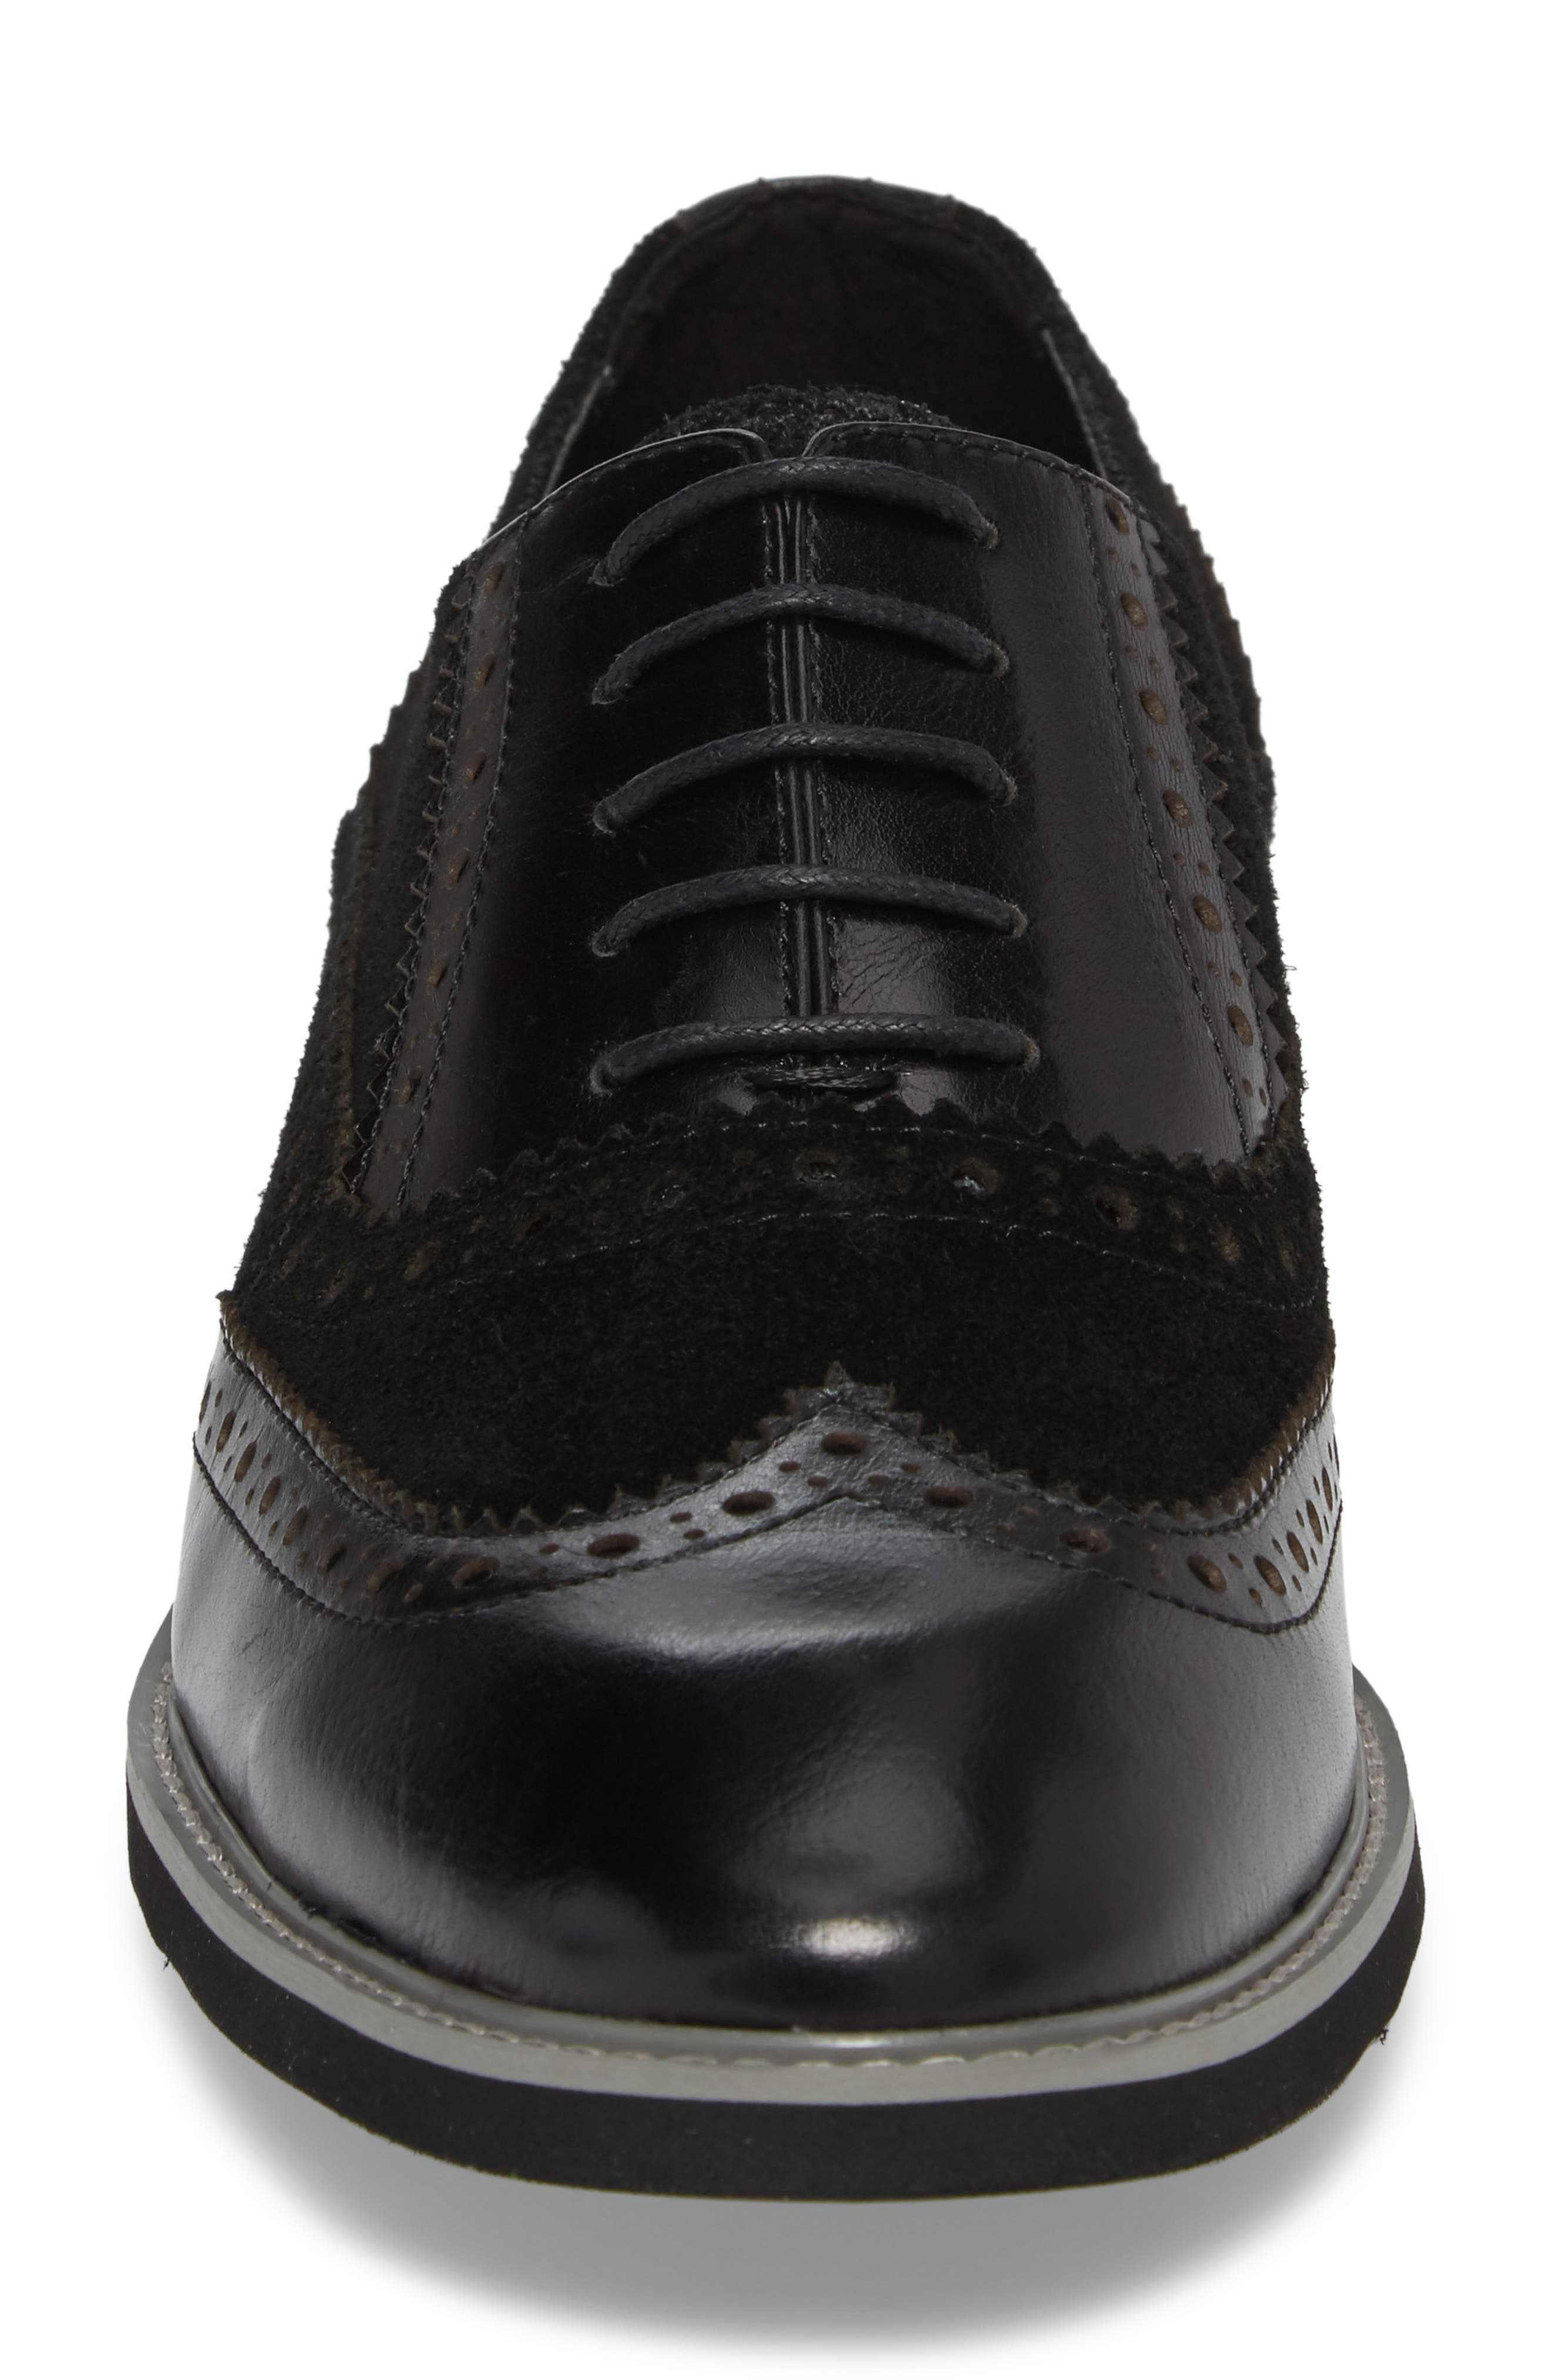 Chorley Wingtip Oxford,                             Alternate thumbnail 4, color,                             Black Leather/ Suede